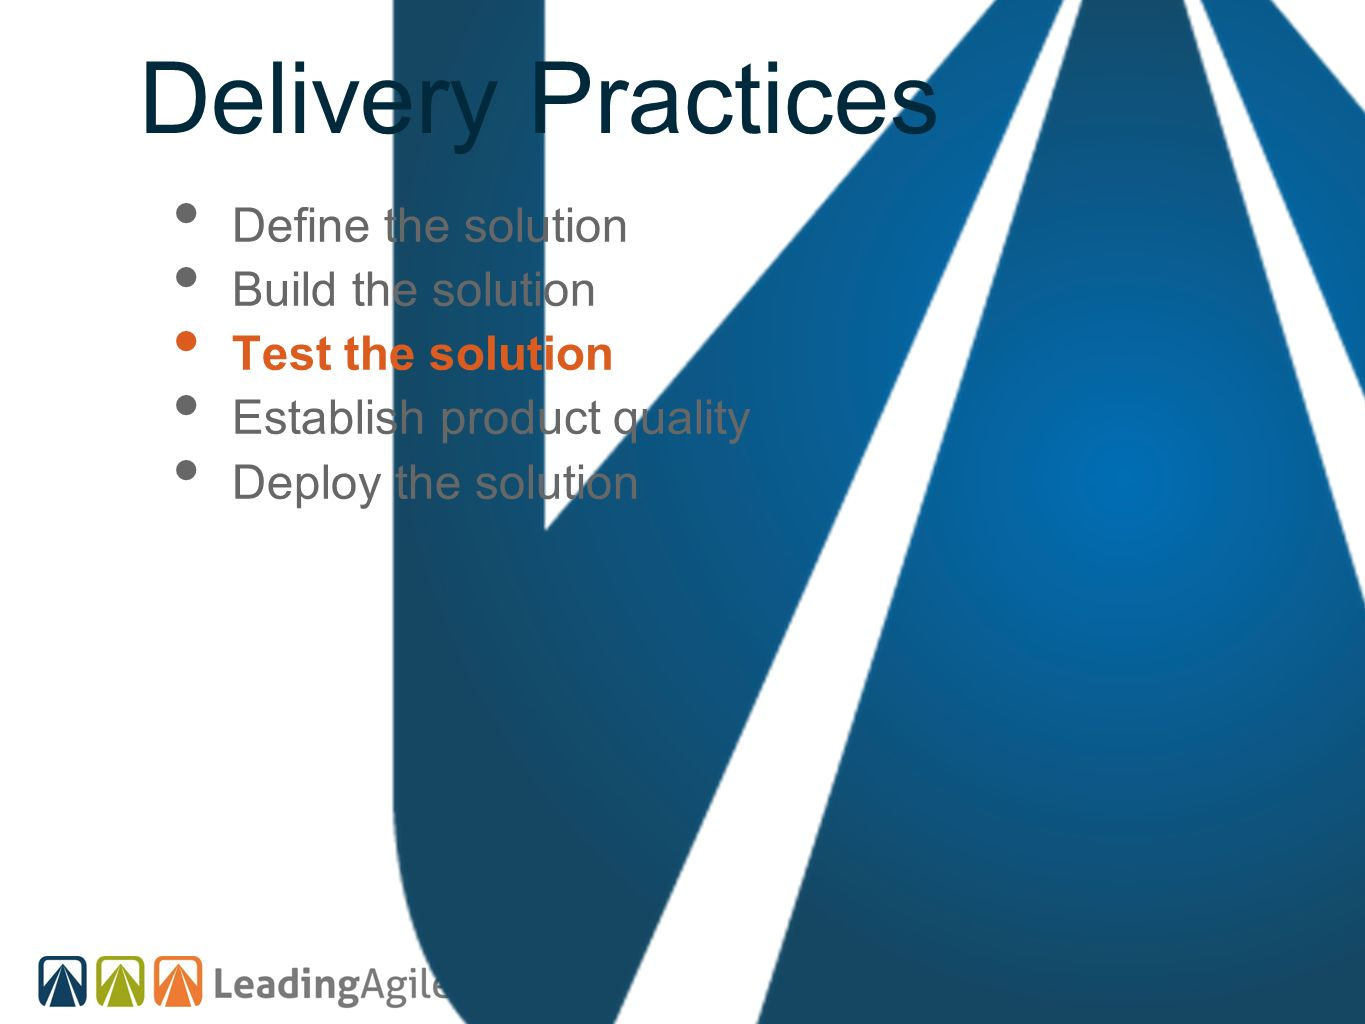 Delivery Practices Define the solution Build the solution Test the solution Establish product quality Deploy the solution